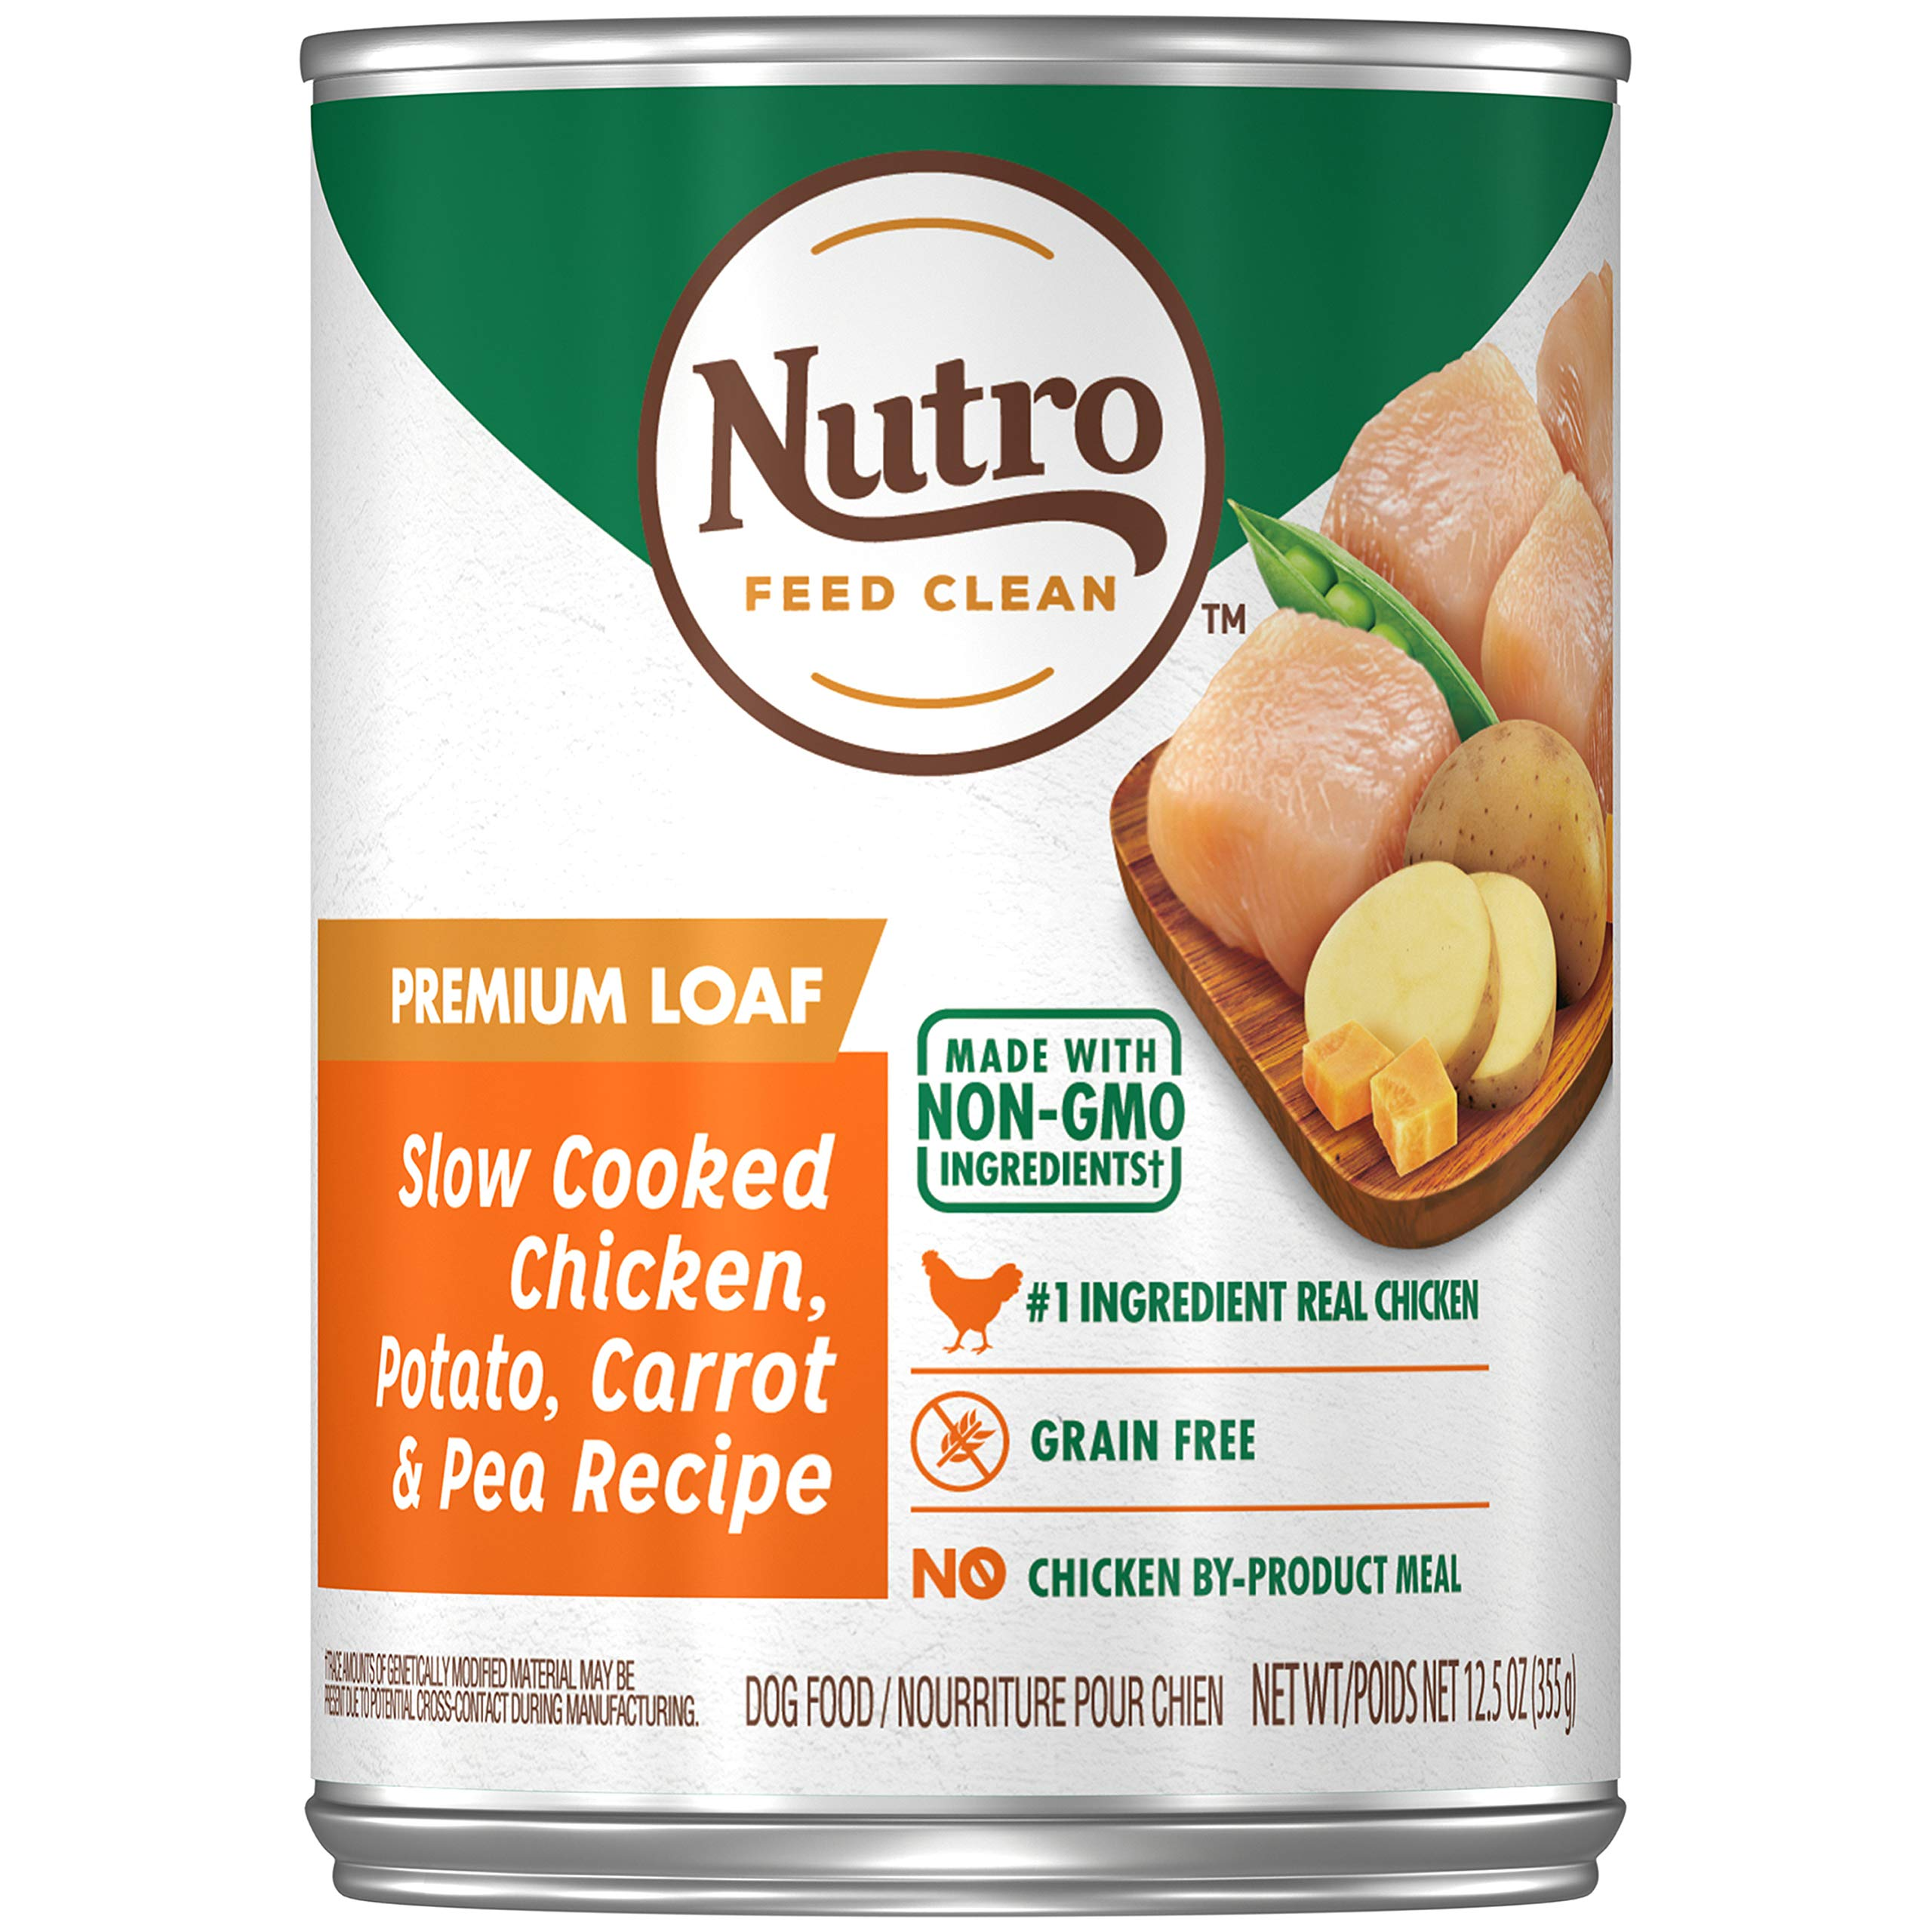 NUTRO PREMIUM LOAF Adult High Protein Natural Wet Dog Food Slow Cooked Chicken, Potato, Carrot & Pea Recipe, (12) 12.5 oz. Cans by Nutro